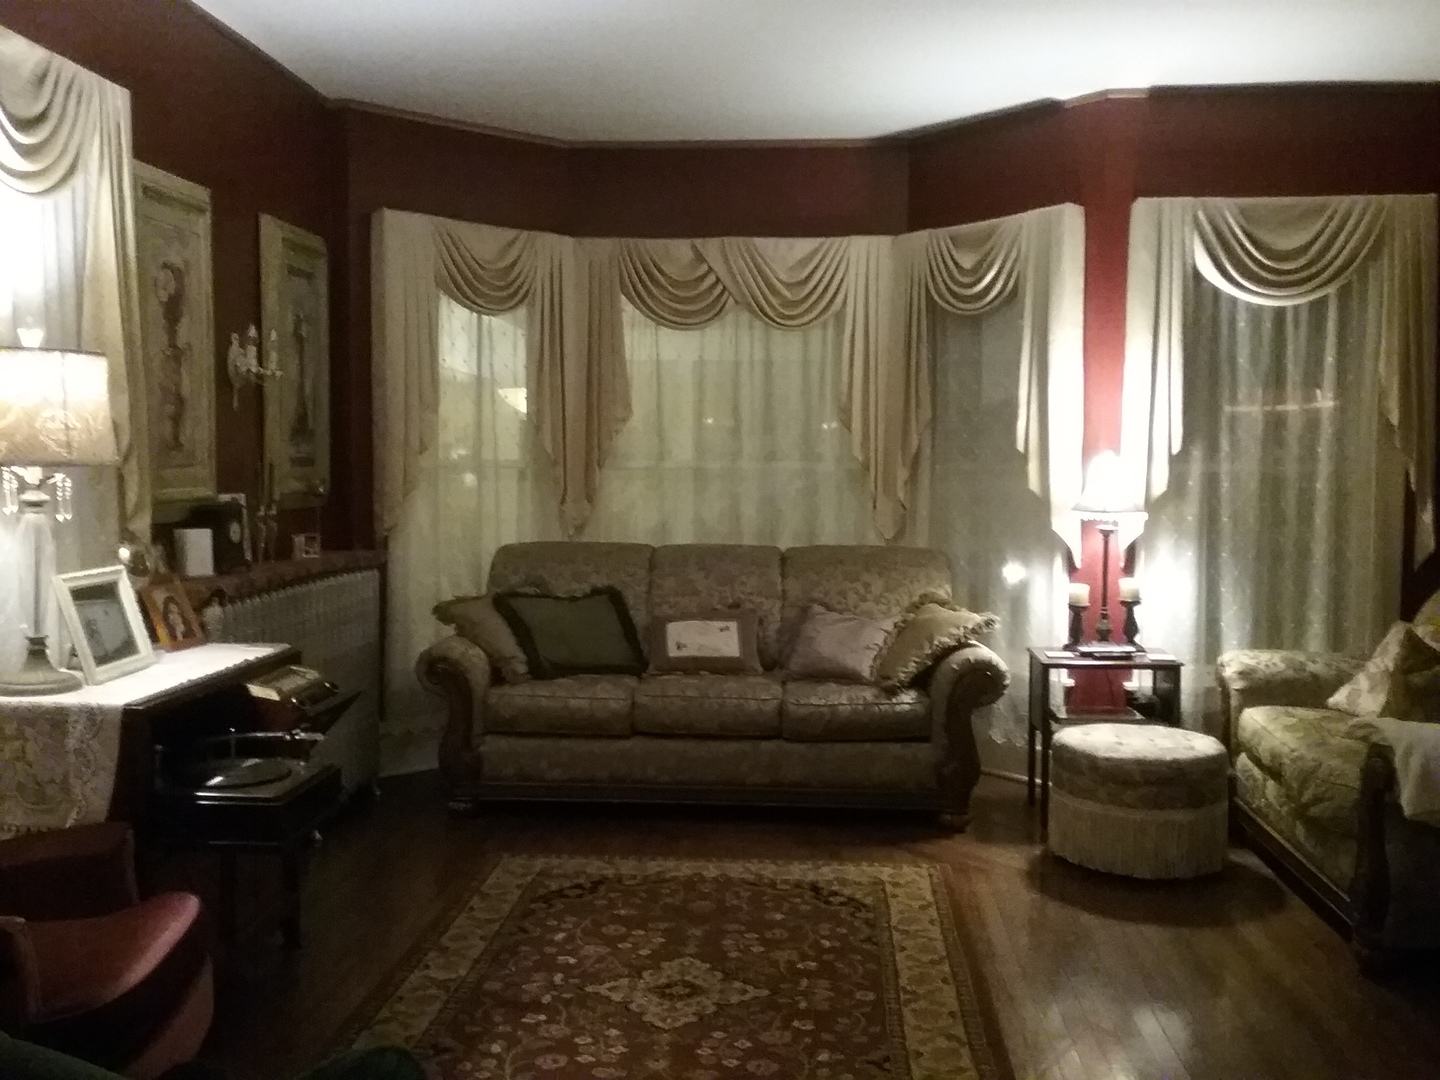 A living room filled with furniture and a large window at Candlelite Inn Bed & Breakfast.